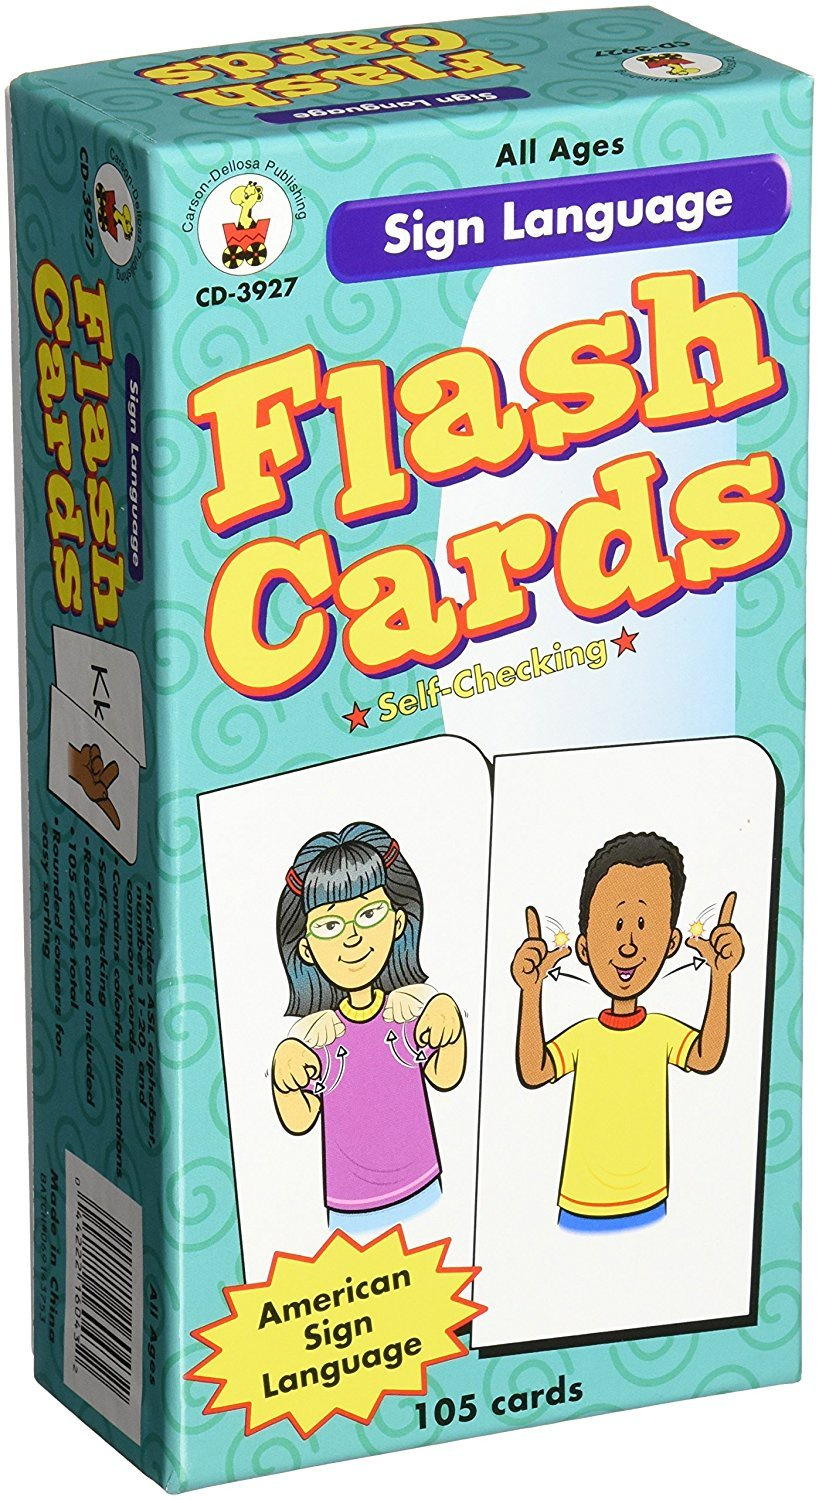 CD 3927 SIGN LANGUAGE FLASH CARDS